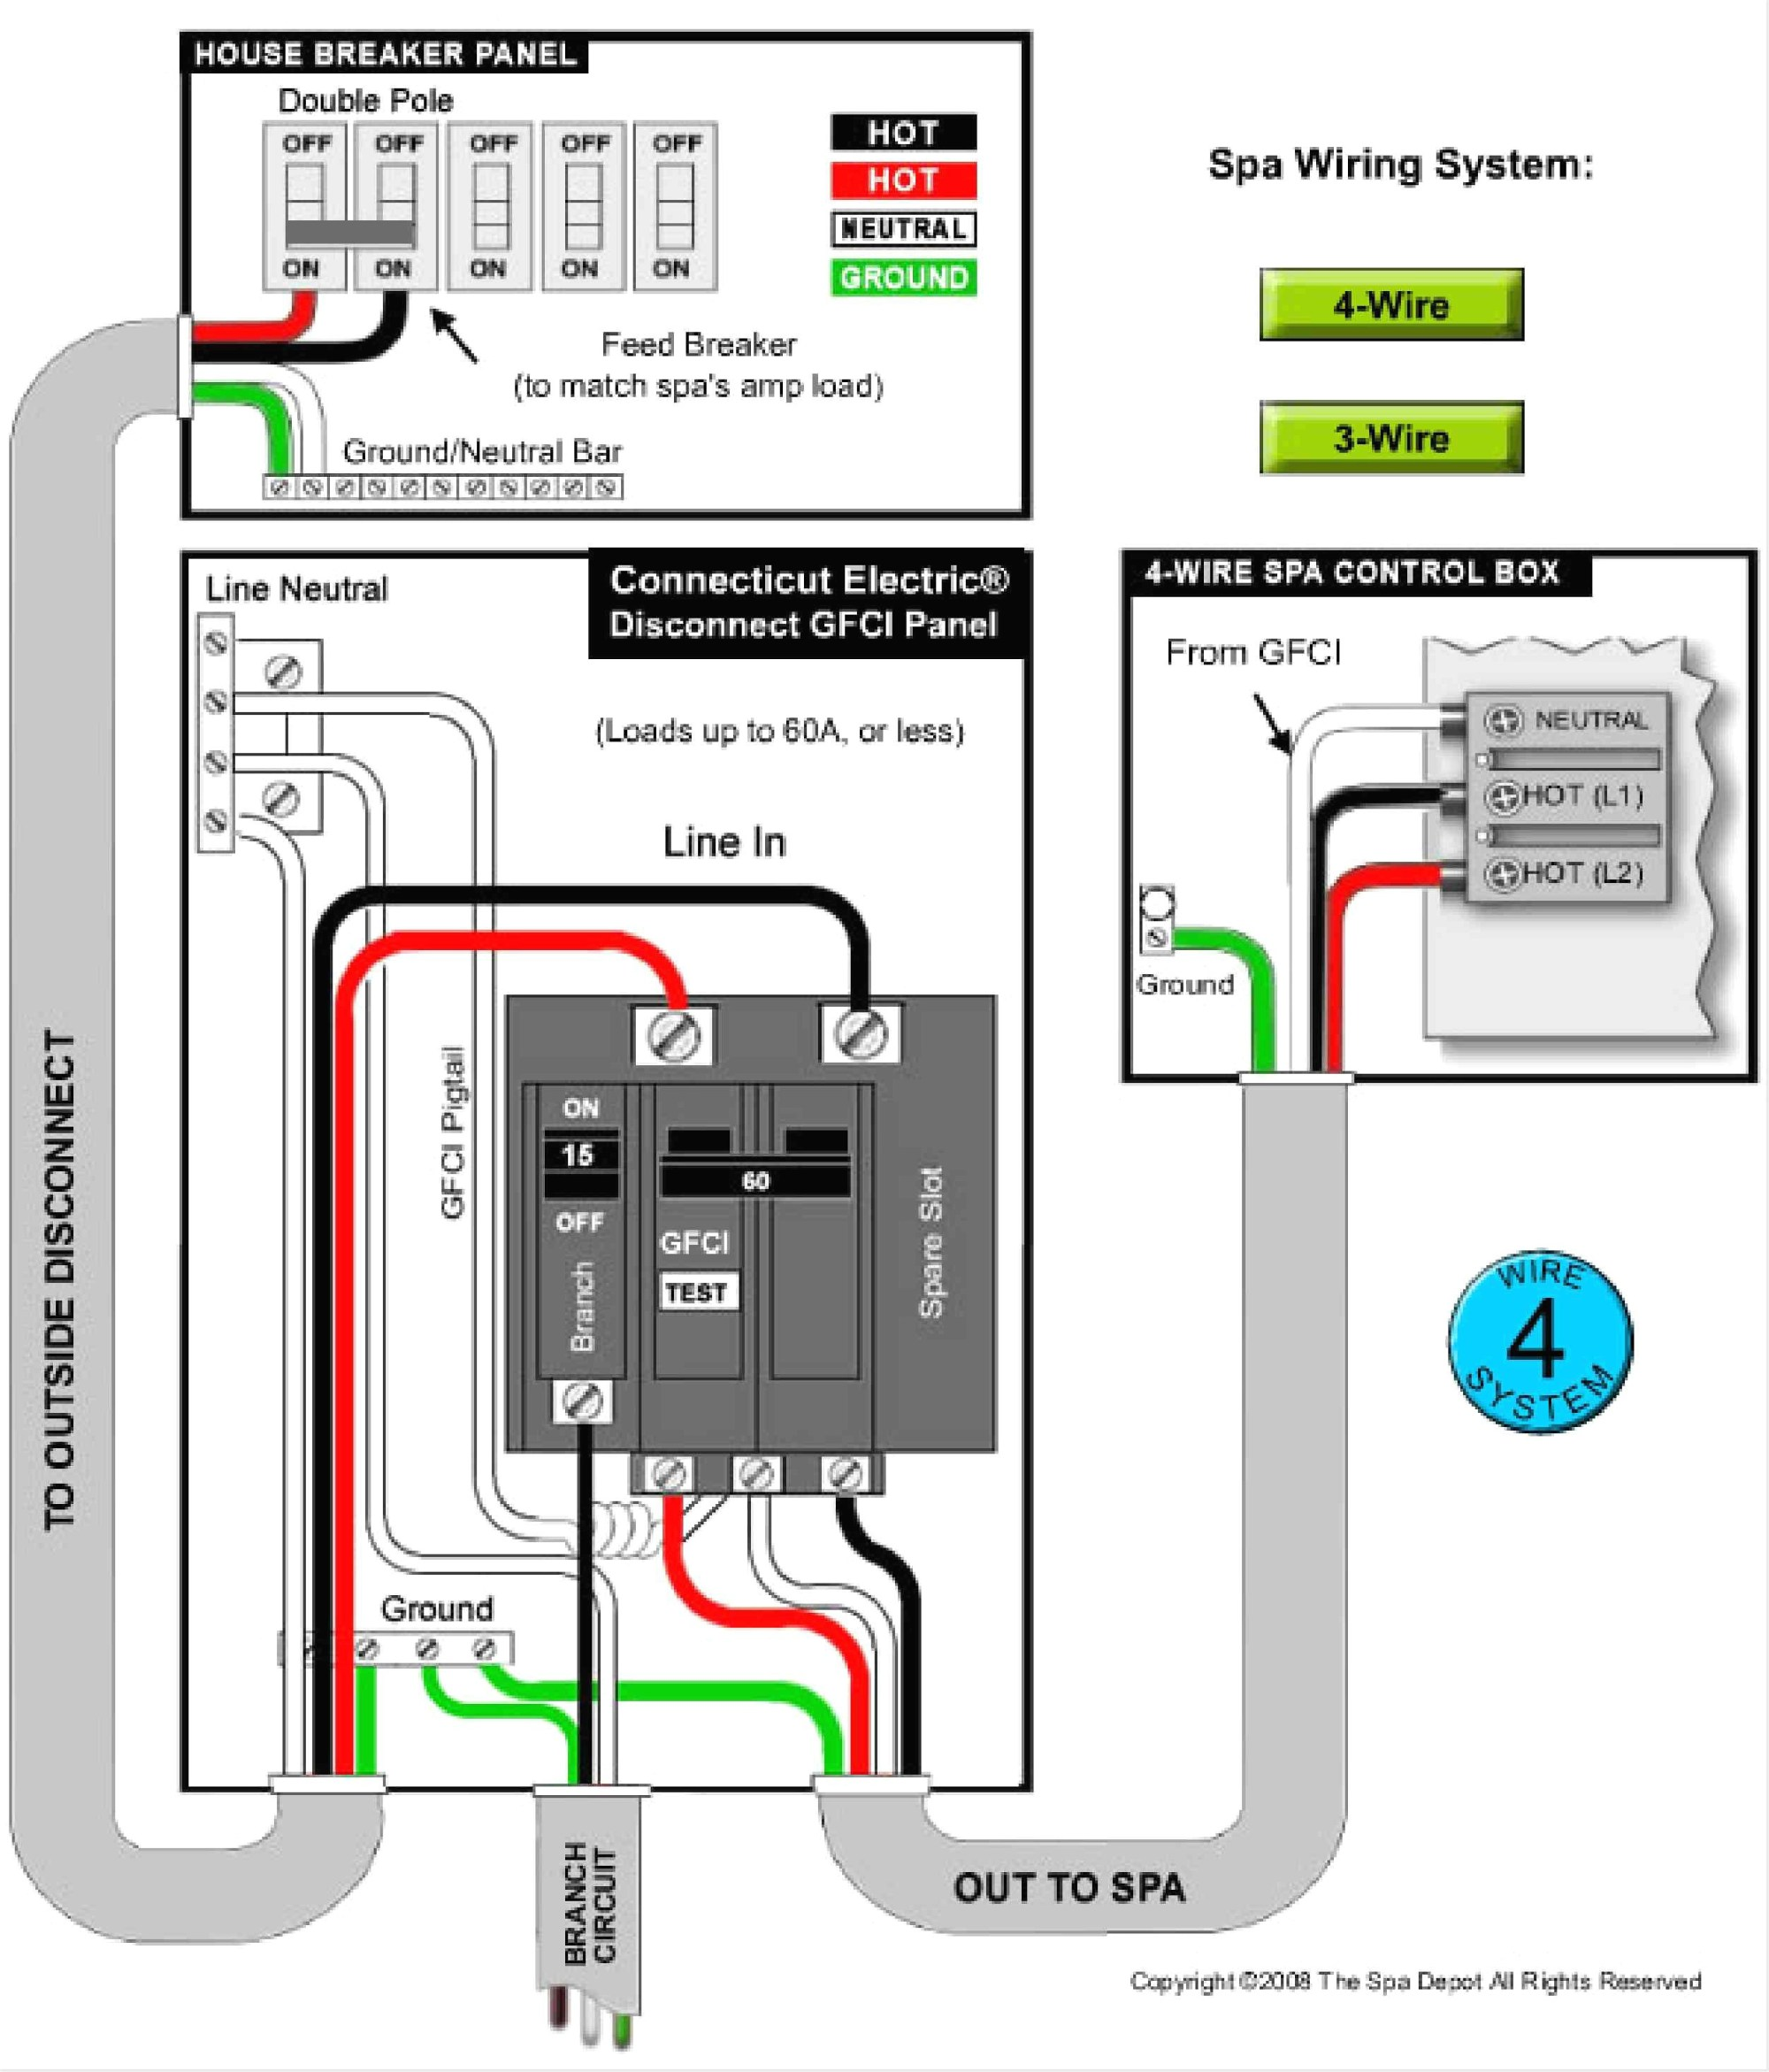 hight resolution of cooper gfci schematic wiring diagram wiring diagram review cooper gfci schematic wiring diagram